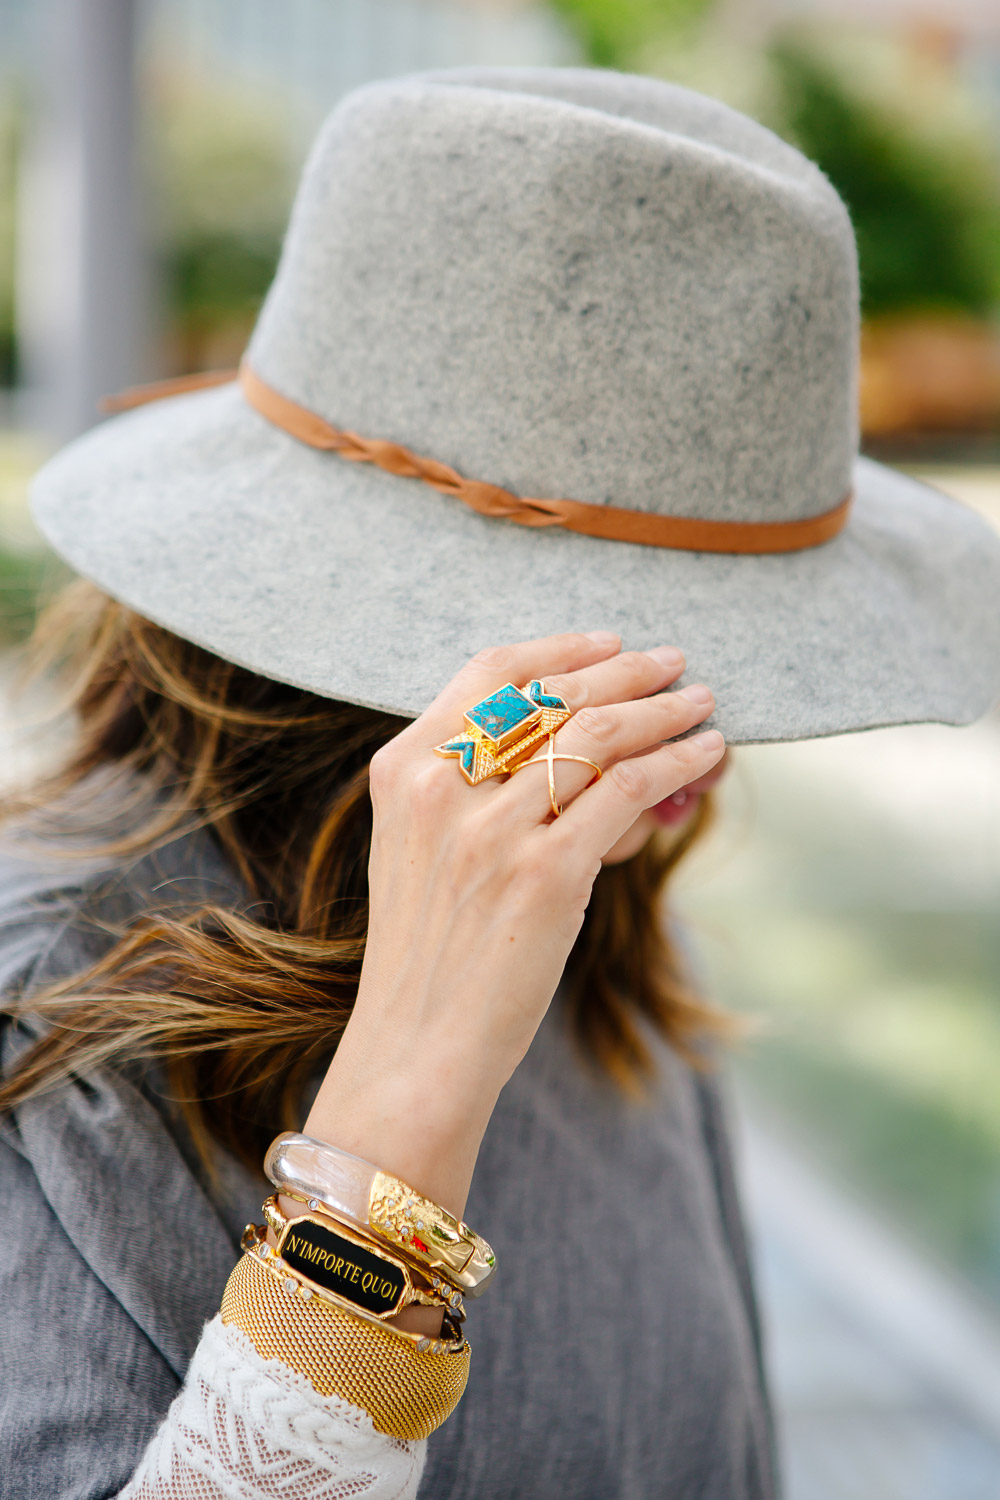 Wishing Well Intention Acacia Ring, target grey wool hat, barse crossover ring, alexis bittar lucite & n'importe quoi bracelet, vintage bracelet